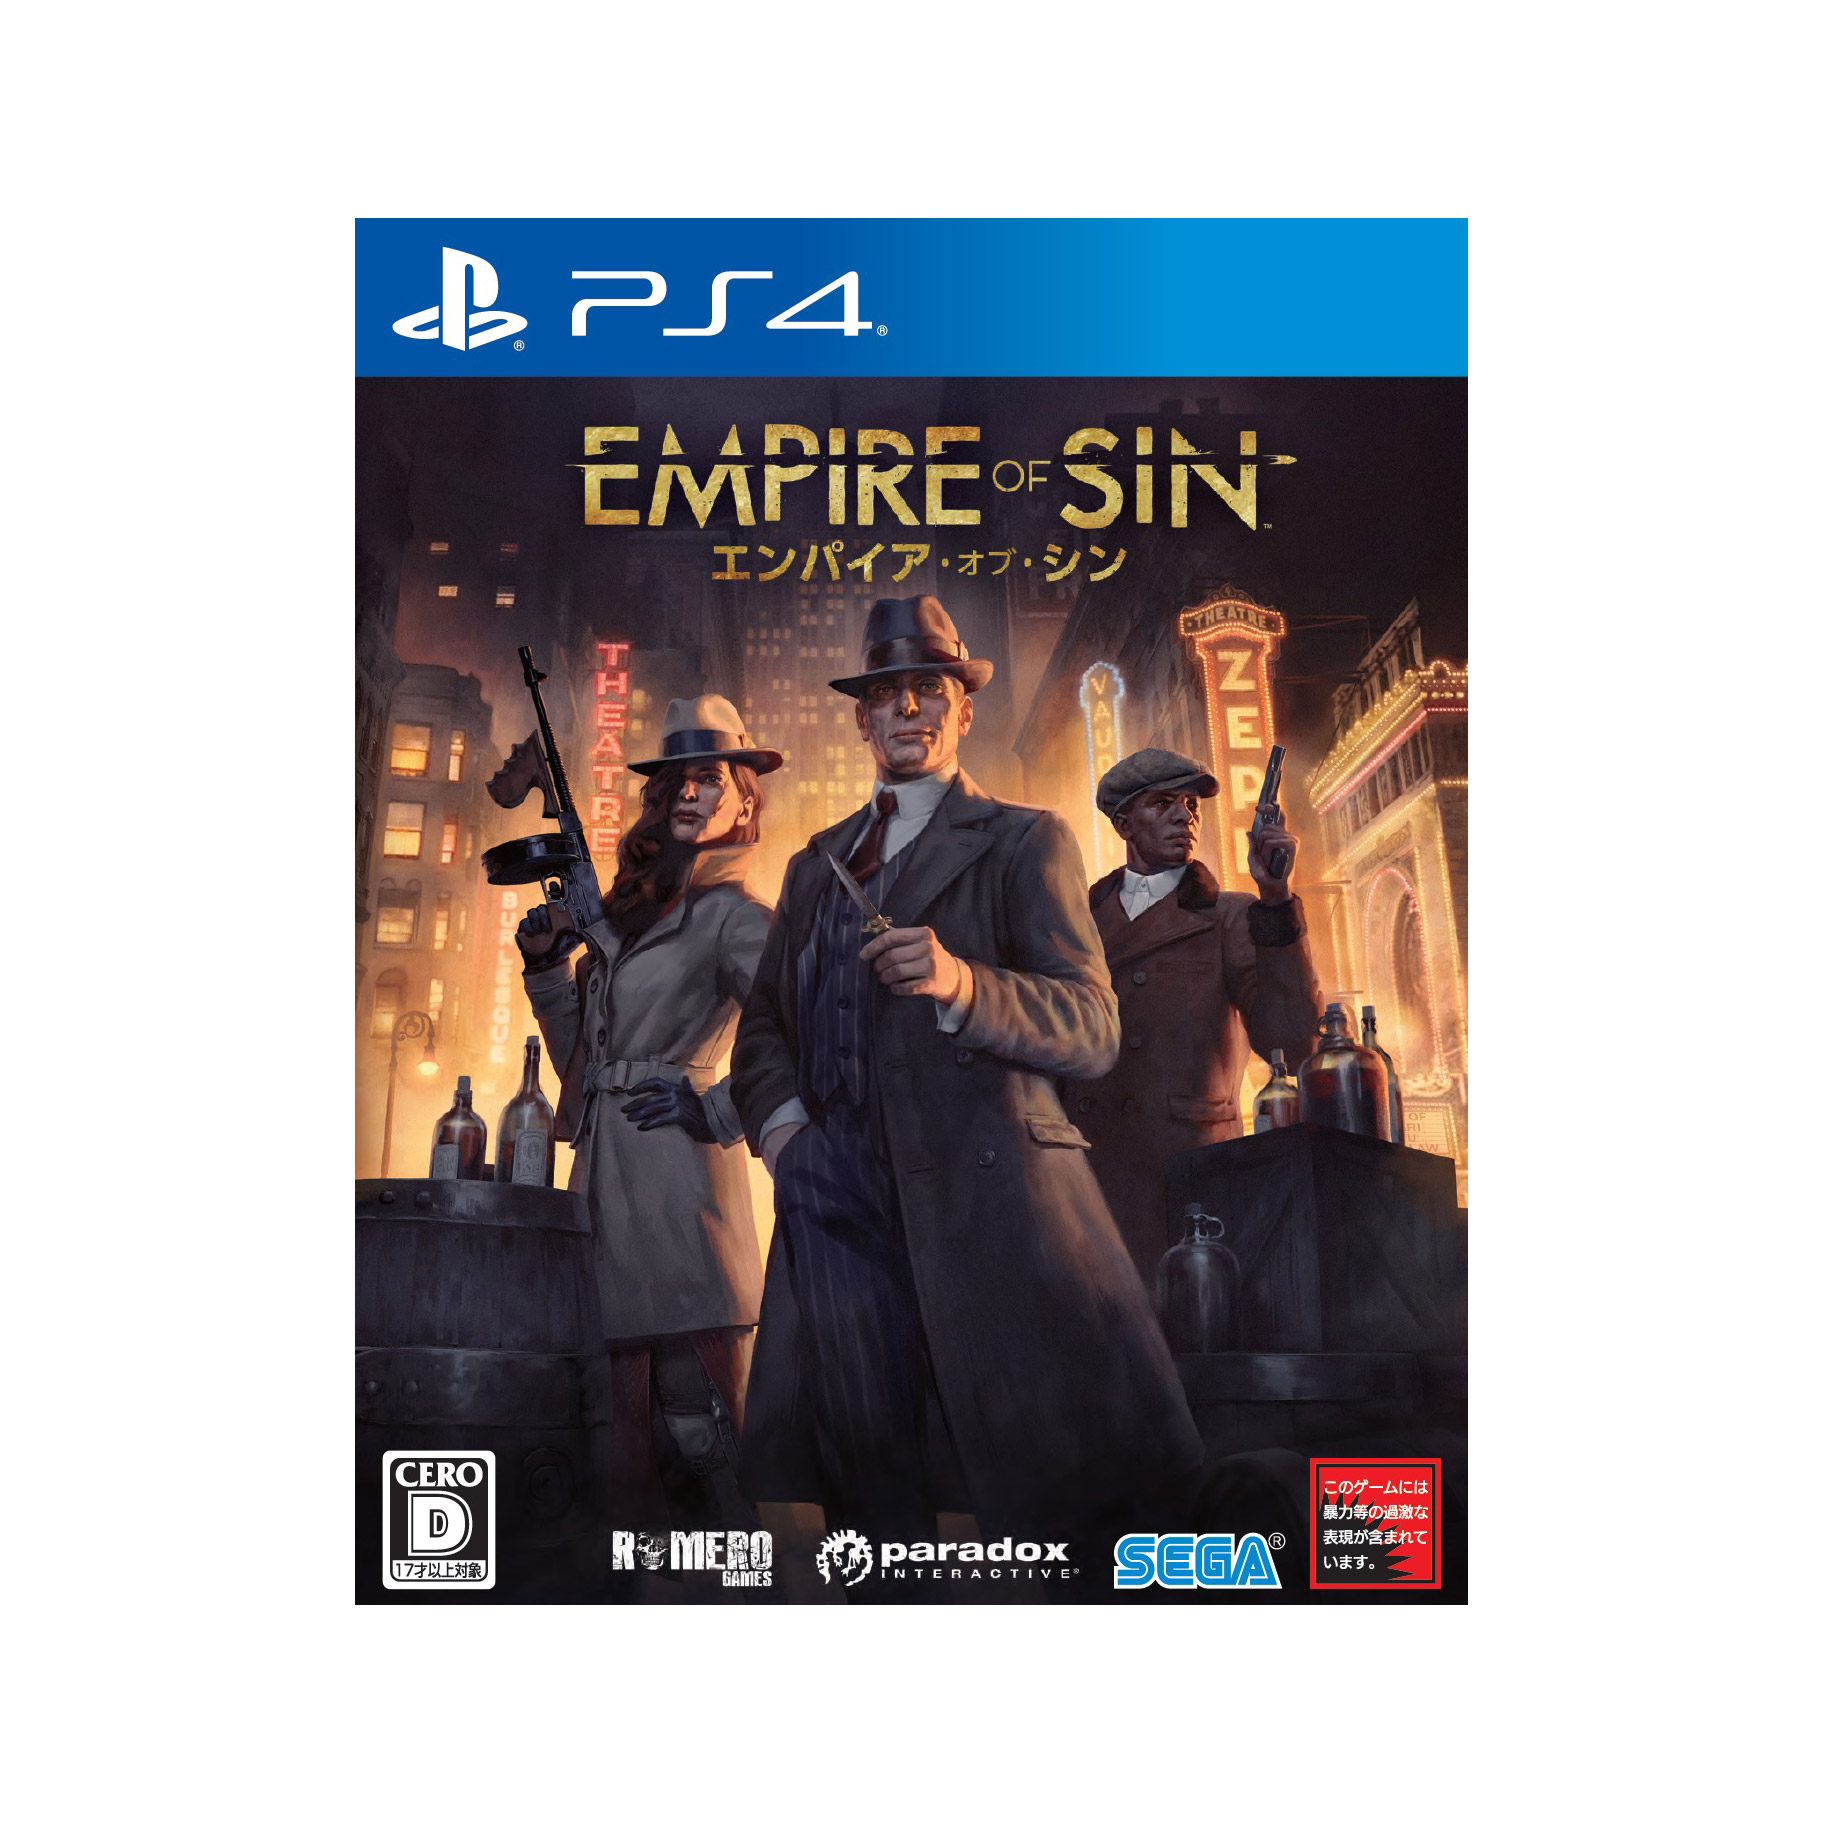 Empire of Sin エンパイア・オブ・シン 【PS4ゲームソフト】